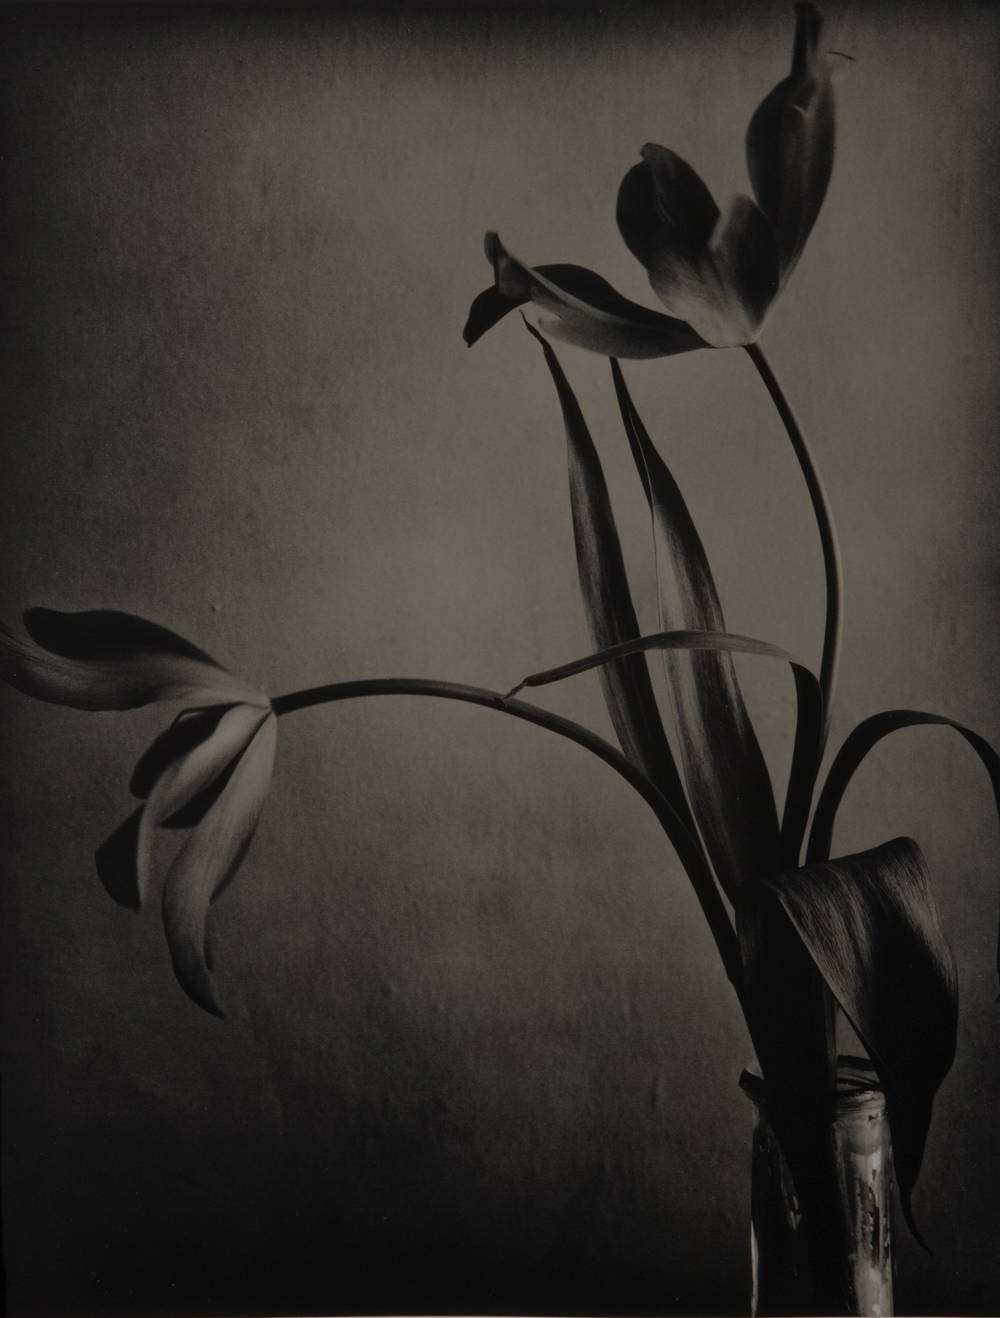 Goblet Tulips 1,  Silver Gelatin Print (Edition of 2), 40 x 50 cm, £2750.